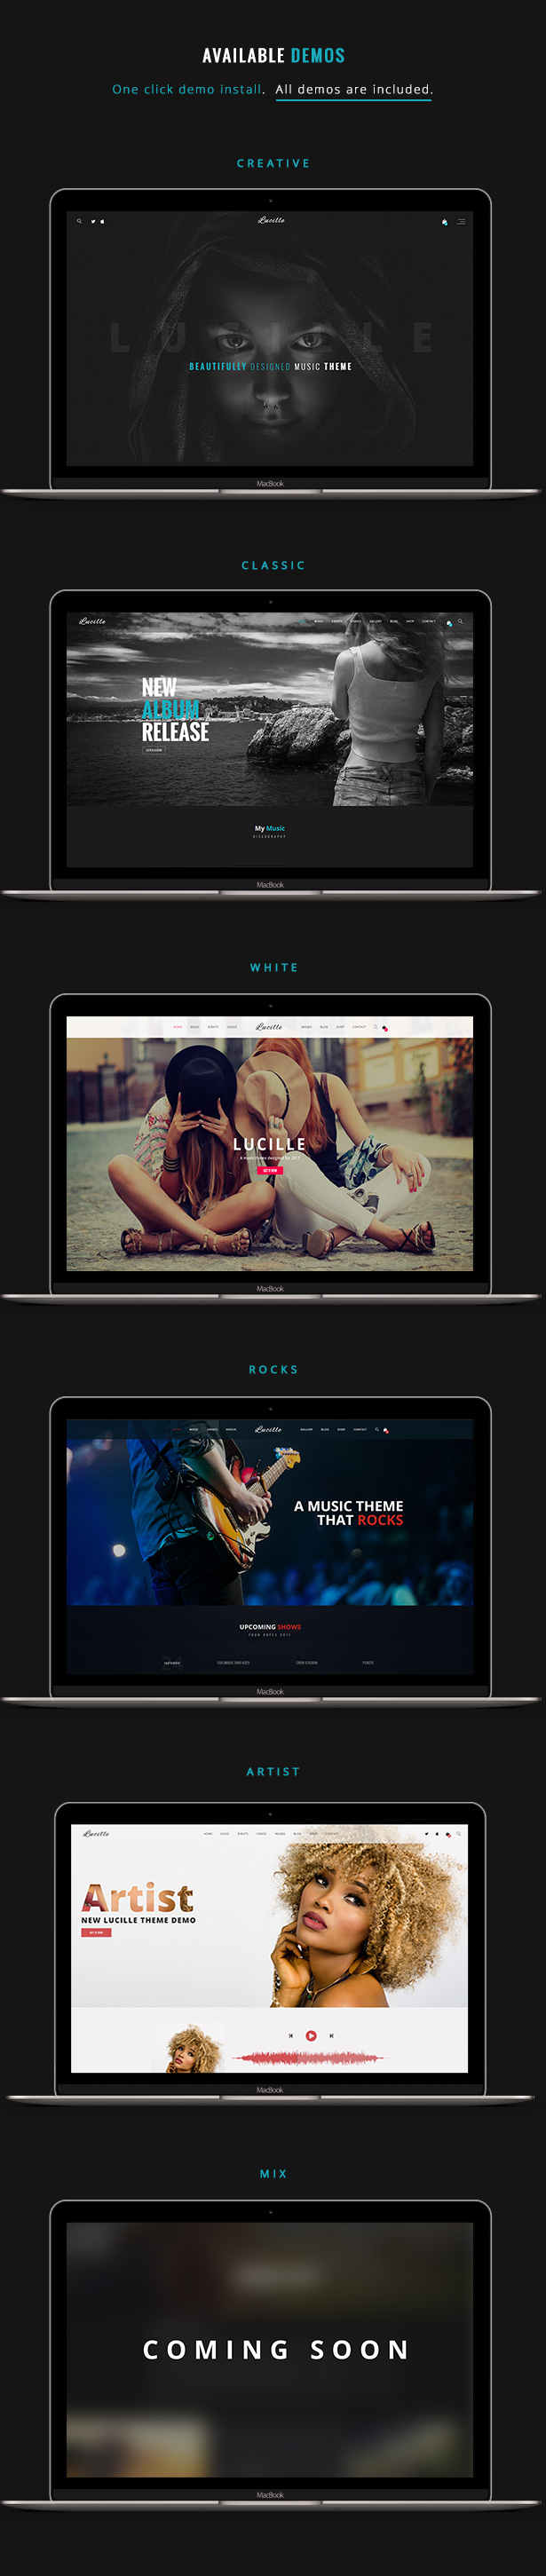 lucille3 - Lucille - Music WordPress Theme